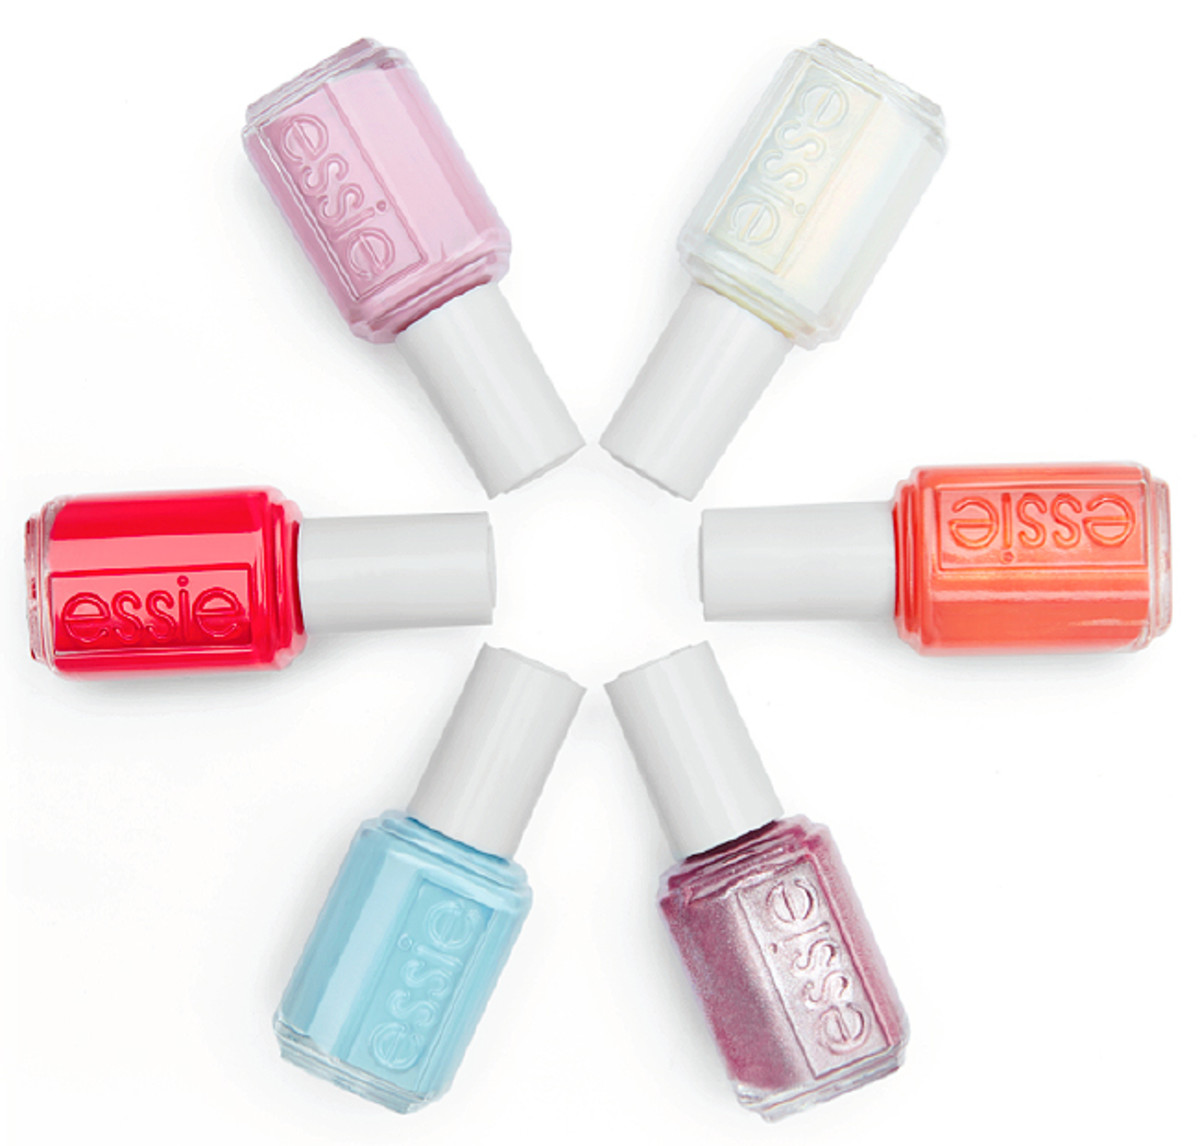 Essie Summer 2017 nail polish collection